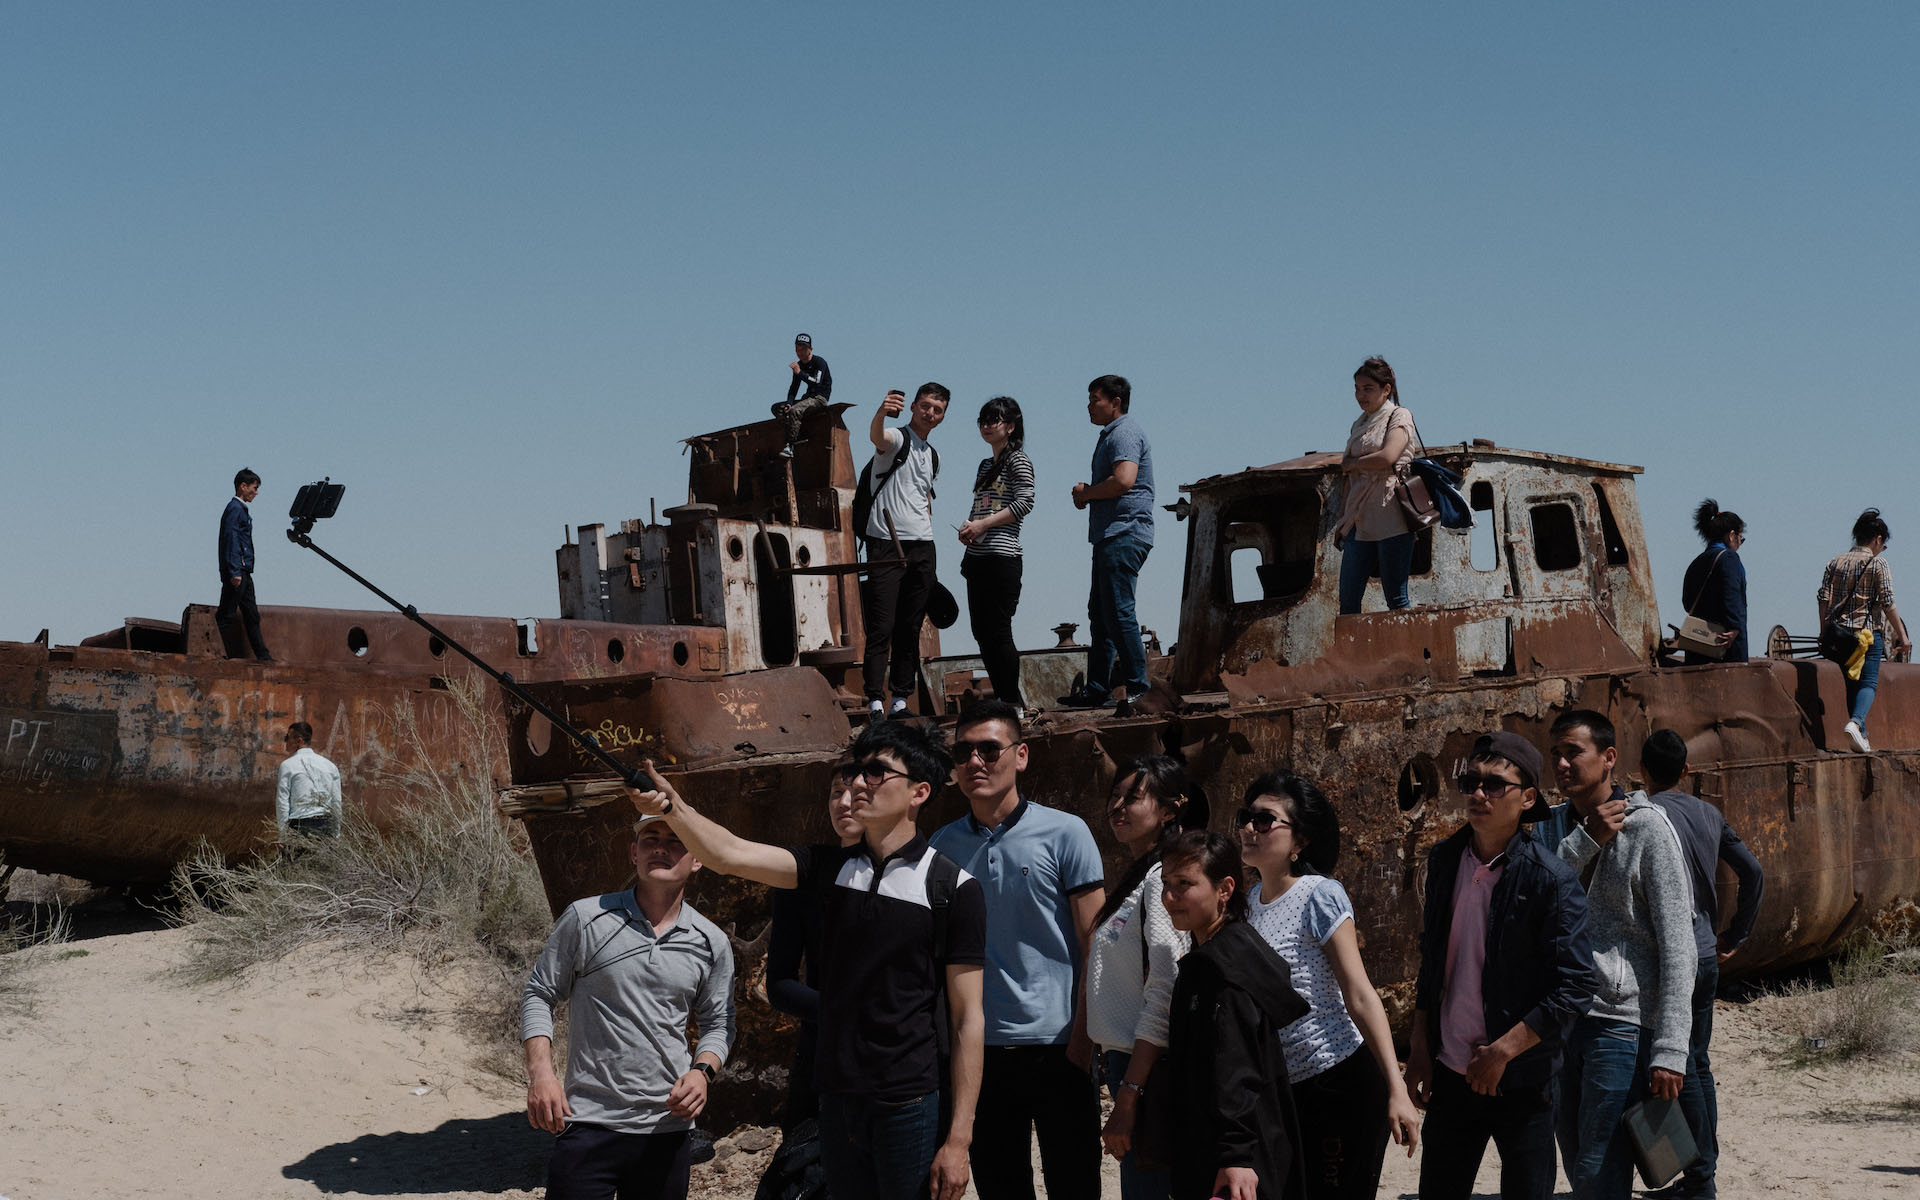 Selfie sticks at the Aral Sea: another example of disaster tourism's self-indulgence?